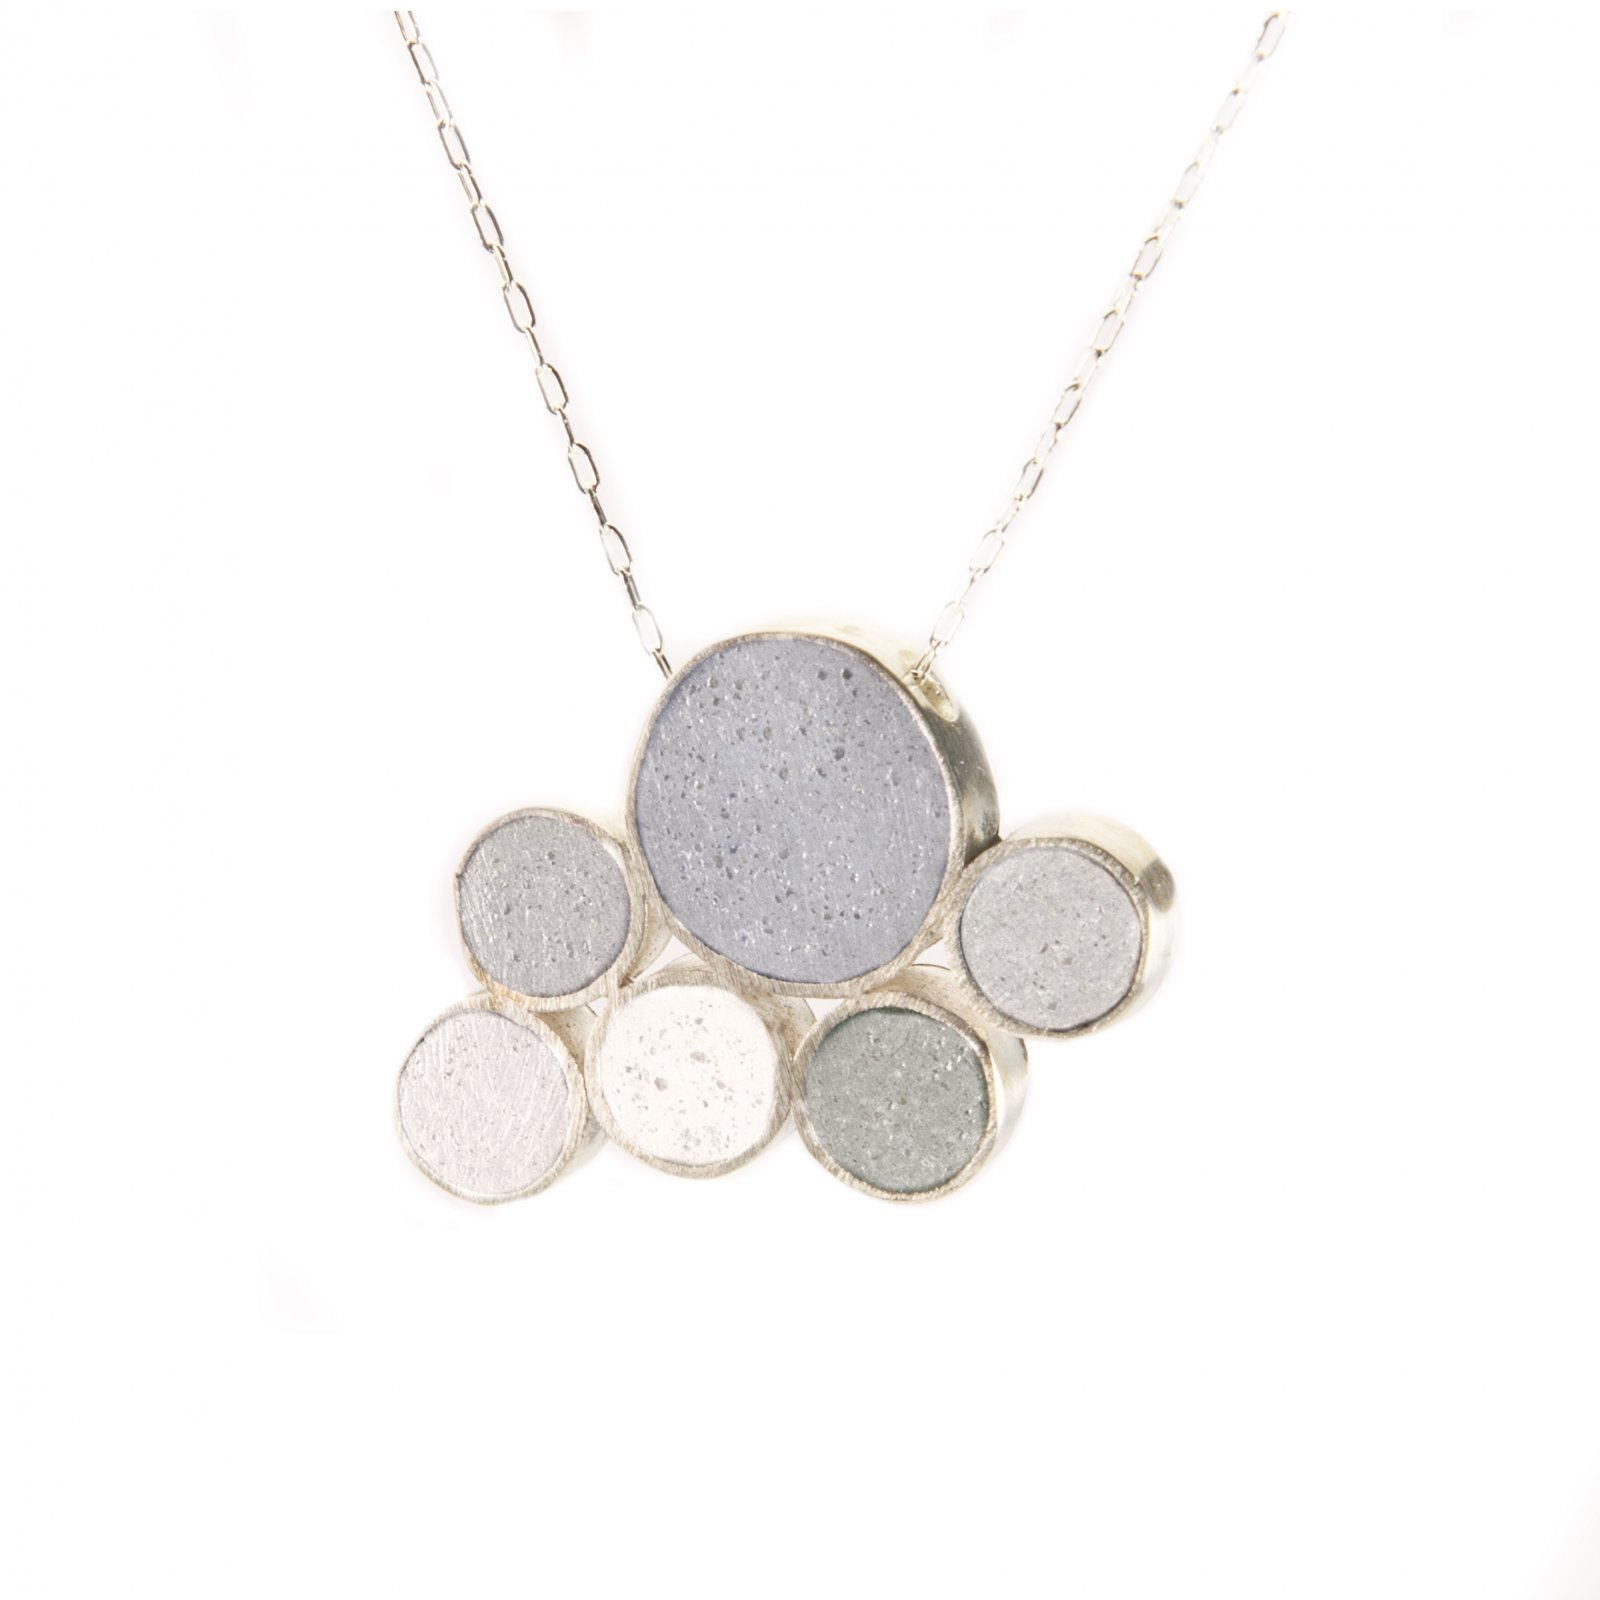 JLB Concrete Bubble Necklace